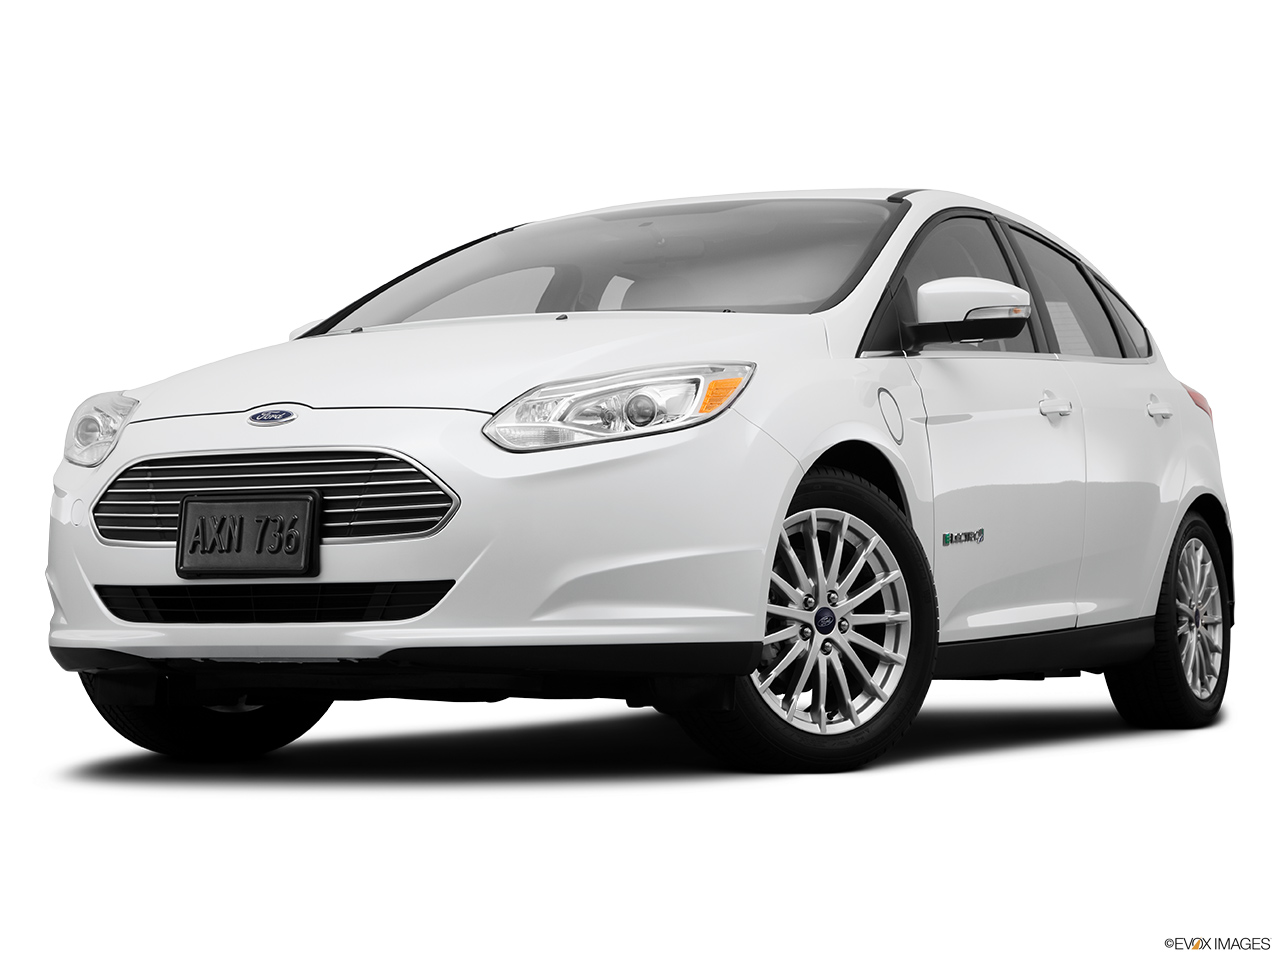 2014 ford focus electric 5dr hatchback front angle view low wide perspective